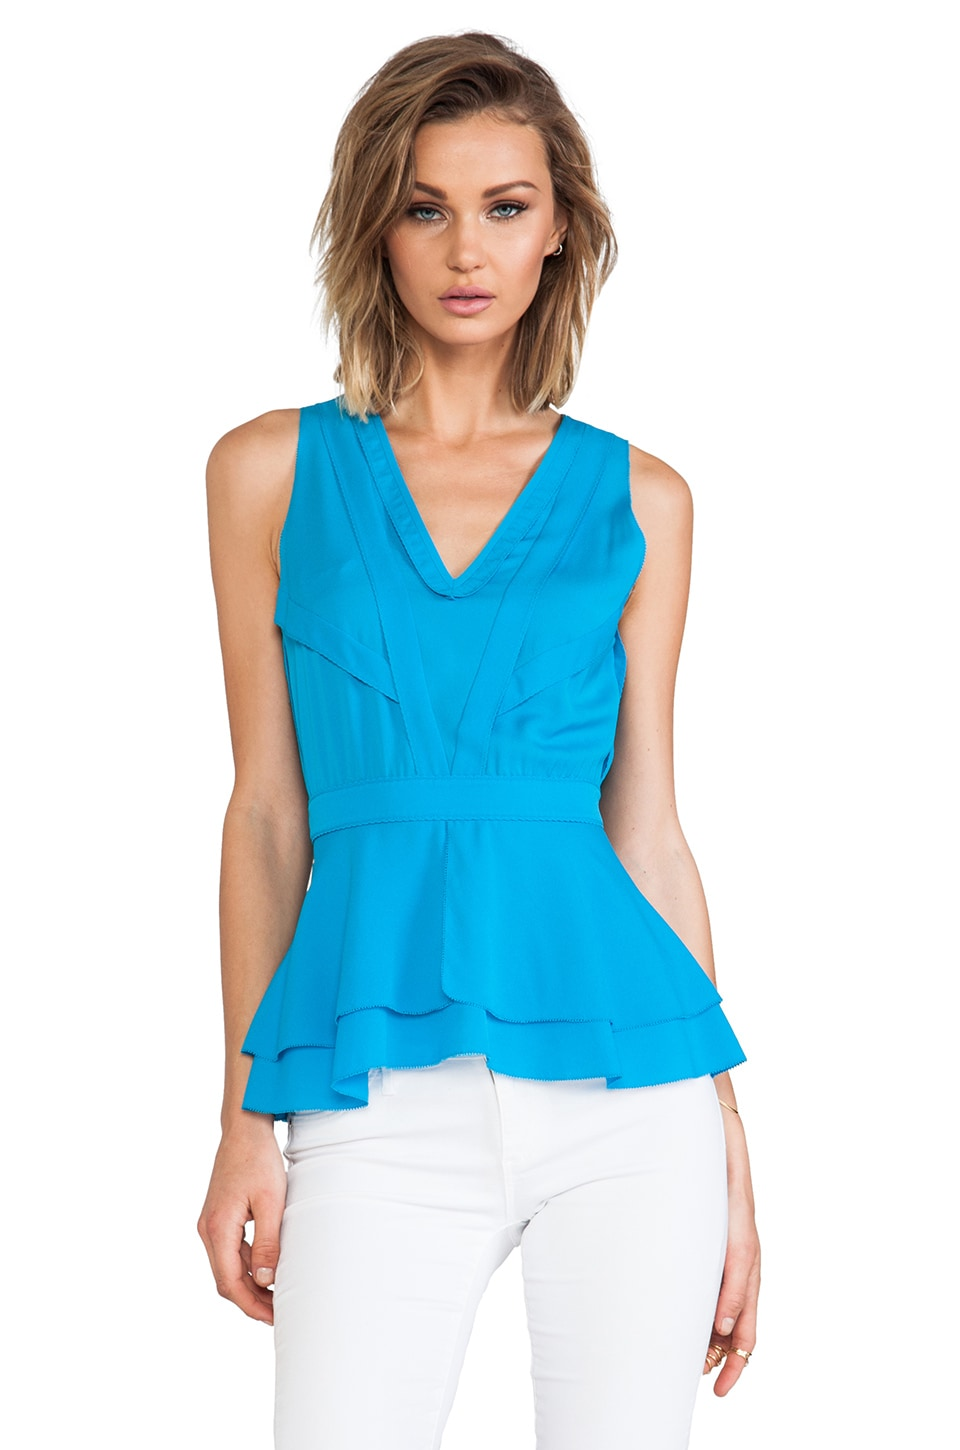 Diane von Furstenberg Talisha Top in Laguna Beach